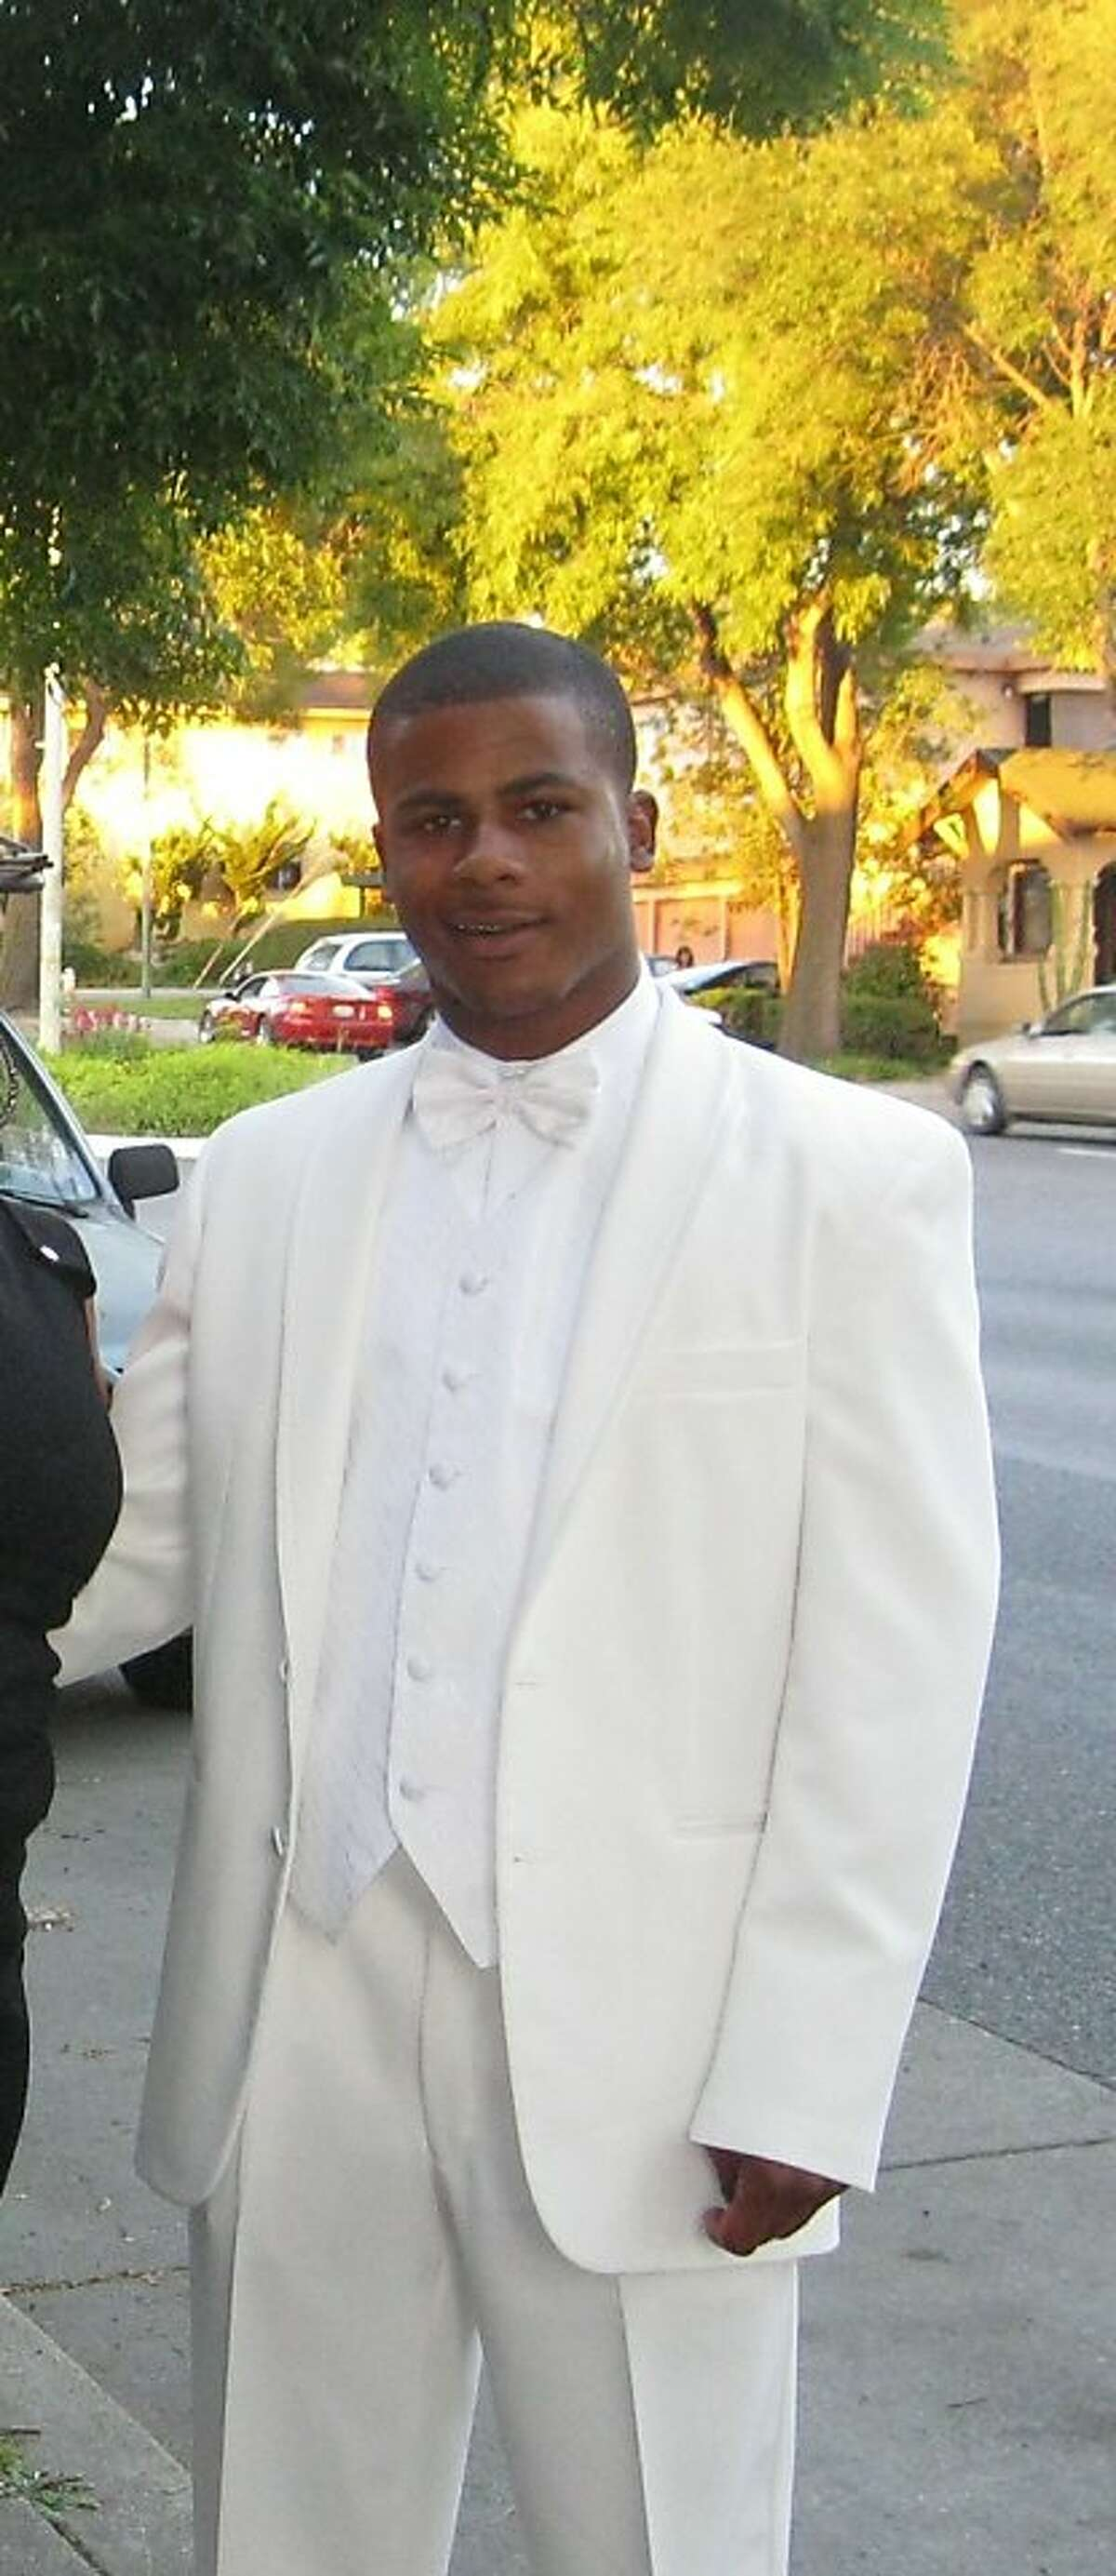 Alan Blueford, in a photo taken recently at his high school prom. Blueford was shot to death by an Oakland police officer May 6, 2012, allegedly after he pointed a gun at the officer.